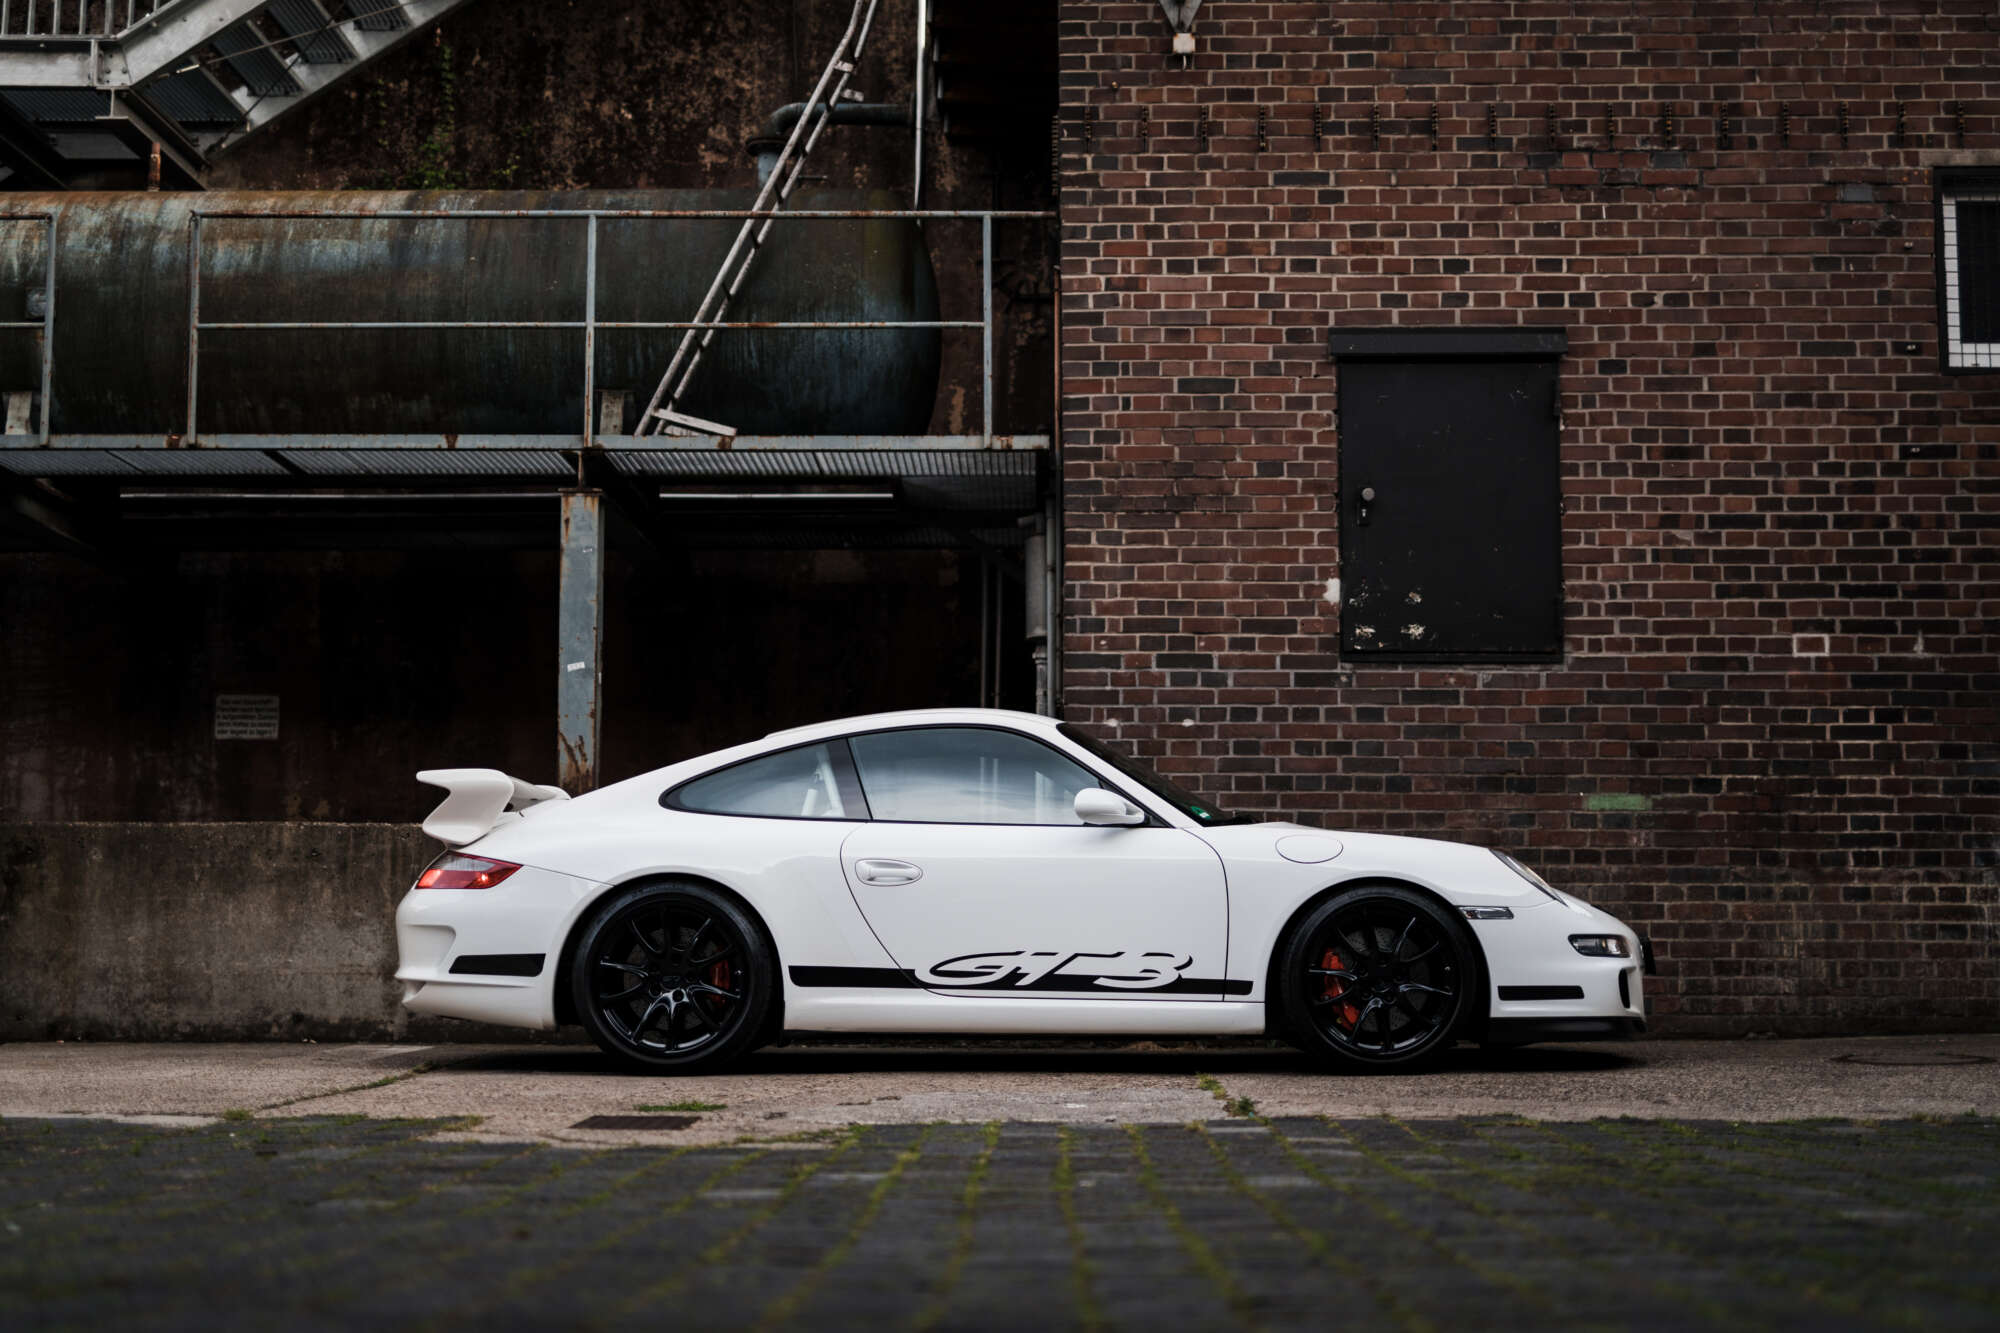 Porsche 997 Gt3 Elferspot Marketplace For Pre Owned Porsche